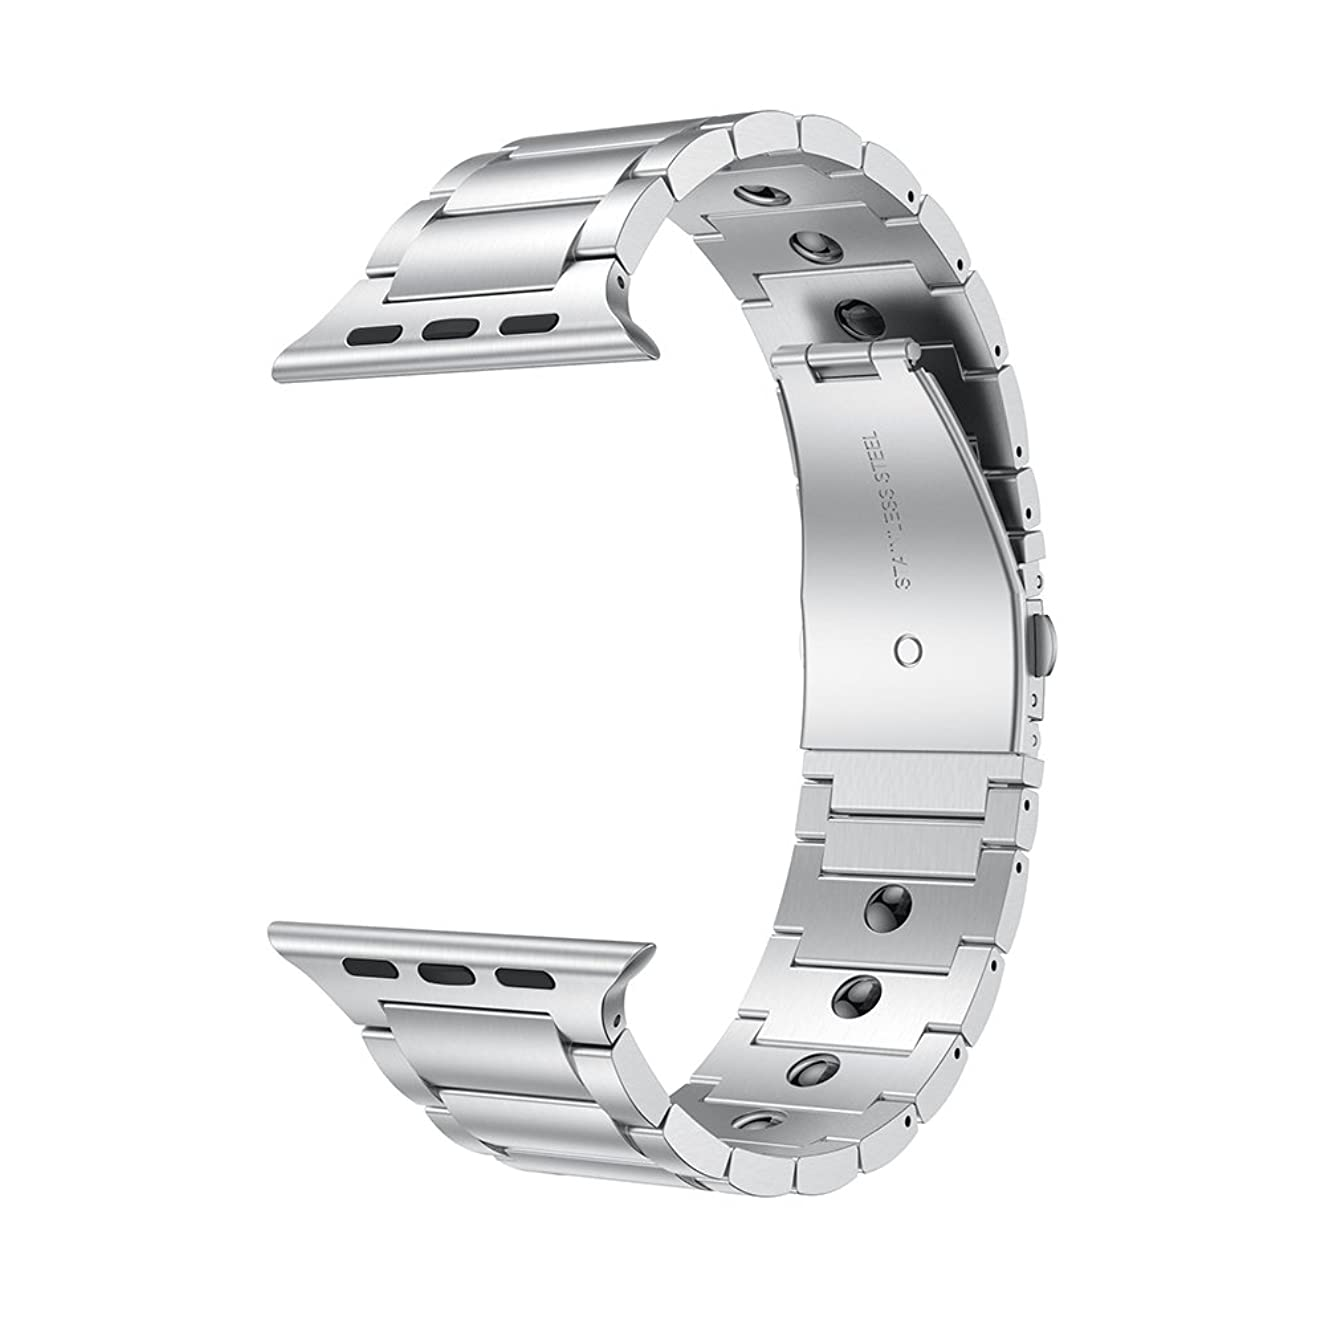 LDFAS Compatible for Apple Watch Band 44mm/42mm, Magnetic Therapy Stainless Steel Metal Link Bracelet Bands Compatible for Apple Watch Series 4/3/2/1, Silver